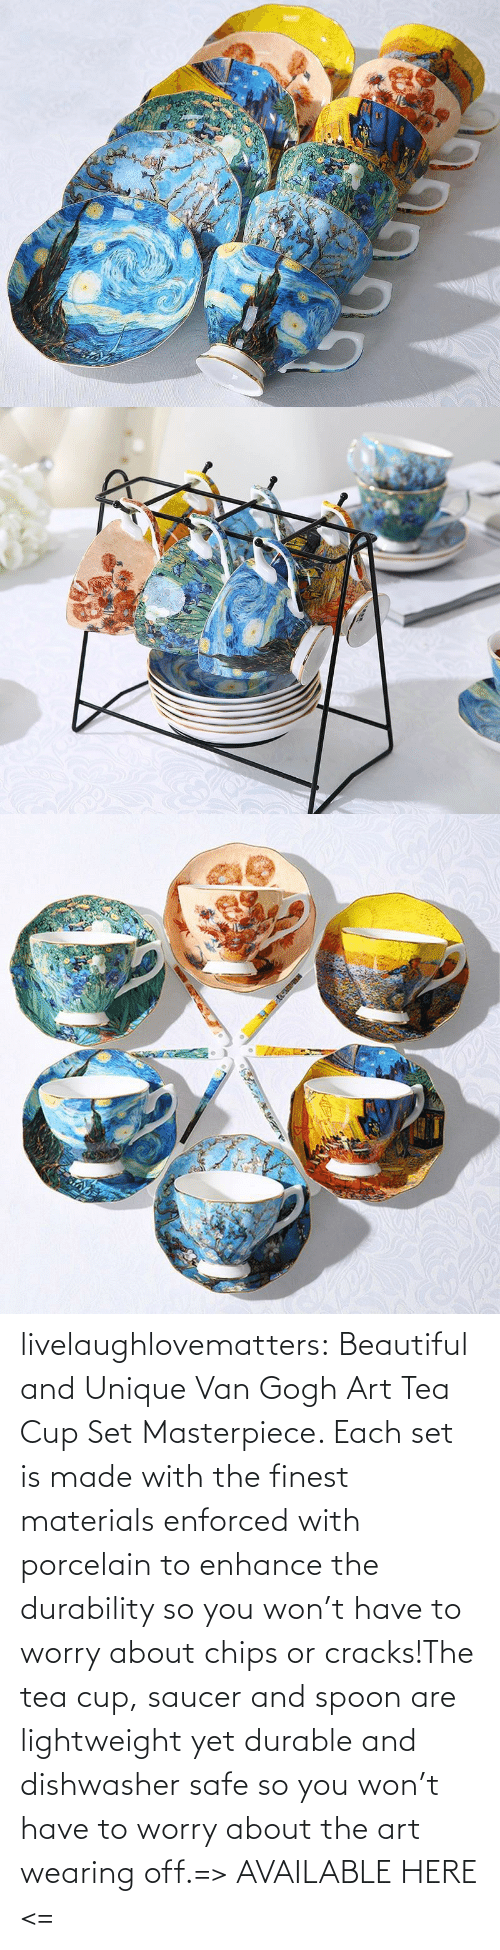 tea: livelaughlovematters:  Beautiful and Unique Van Gogh Art Tea Cup Set Masterpiece. Each set is made with the finest materials enforced with porcelain to enhance the durability so you won't have to worry about chips or cracks!The tea cup, saucer and spoon are lightweight yet durable and dishwasher safe so you won't have to worry about the art wearing off.=> AVAILABLE HERE <=